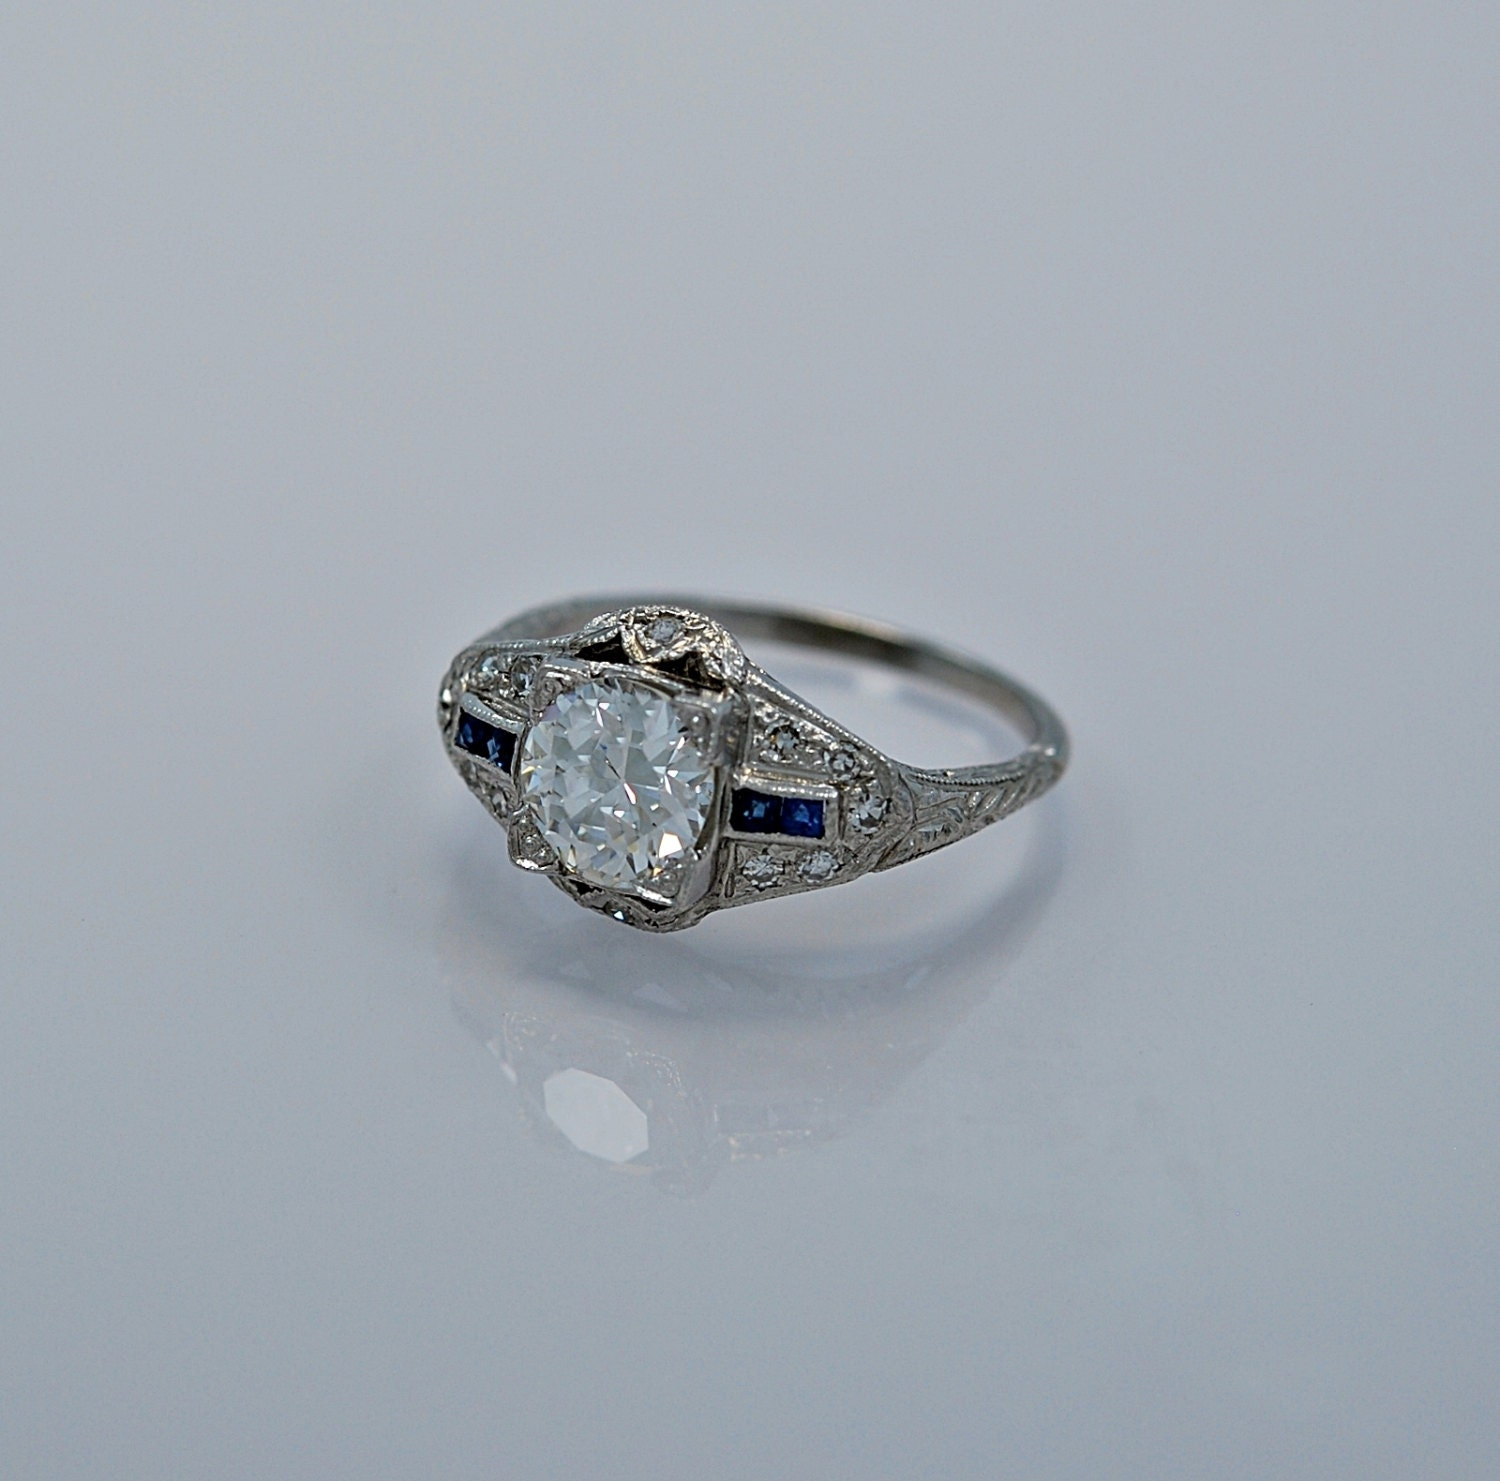 Elegant 7000 Dollar Engagement Ring Engagement Wedding Diamond Ring